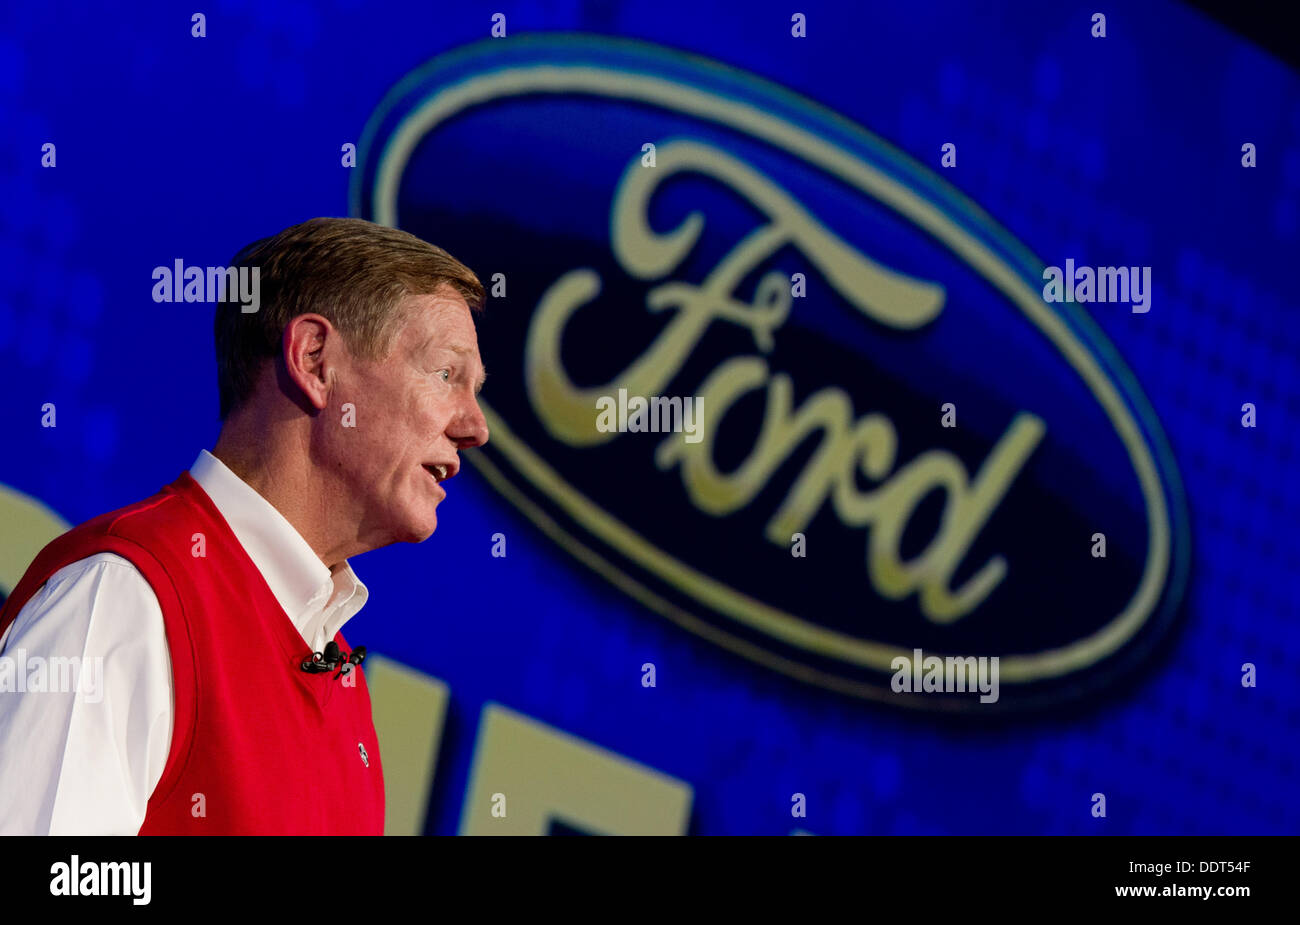 CEOof Ford Alan Mulally talks during a news conference about the S-Max Concept car at the Berlin Radio Show IFA in Berlin, Germany, 06 September 2013. The international radio exhibition is open to the public until 11 September 2013. Photo:RAINER JENSEN - Stock Image